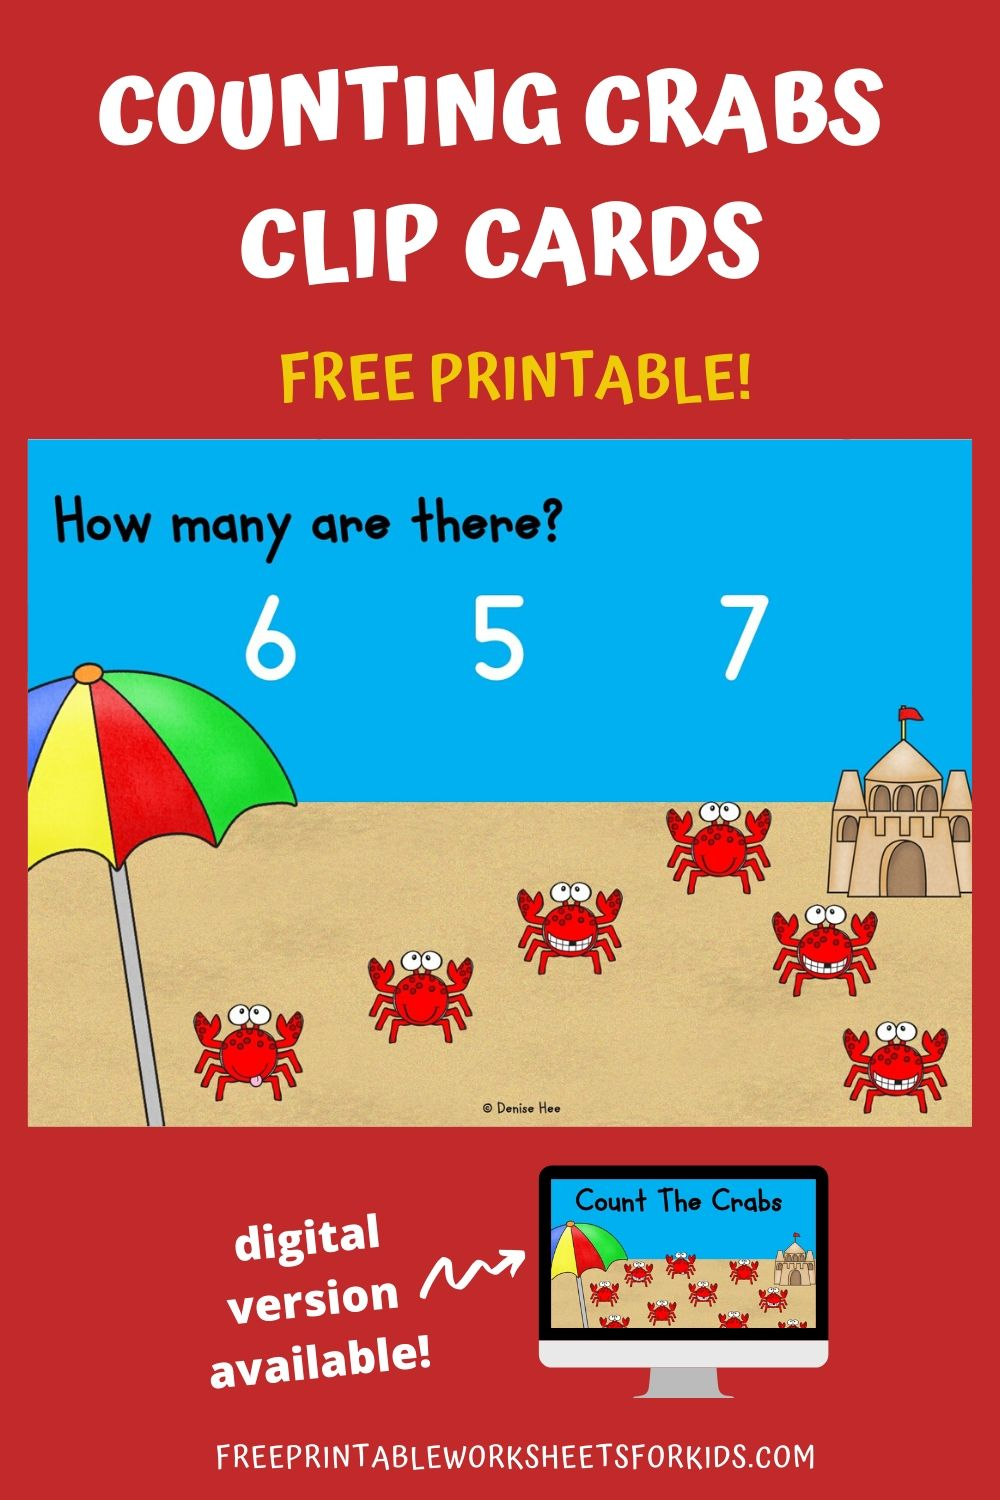 Count The Crabs 1-10 | Free Printable Worksheets For Kids | Preschoolers will love counting these adorable crabs walking across the beach. Are you ready for some summer fun? This printable set of counting clip cards will certainly get you in the mood for all the sunshine and beach fun. Other Printable Animal Centers and Worksheets Counting Colorful Bugs - Learn color words and counting in this fun book for beginner readers. Frog Life Cycle - 3 activities included in this pack perfect for Springtime. Frog Number Hop Game - Add and subtract as kids race to the pond. Bumblebee Addition Game - Solve the sum so the bee lands on the correct flower. Animal Alphabet Mazes - Work on letter recognition with these 26 mazes. Counting Clip Cards Setup For this activity you will need: Paper Printer Wooden pegs or clothespins Optional: laminator If you don't have the materials needed, don't sweat! You can get it delivered to your doorstep really quickly with Amazon Prime. You can get a 30-day free trial here.  Playing This Fun Counting Game Print out the pages and cut them as needed into individual clip cards. I would suggest laminating them so you can use them again and again. Lay out the cards with some wooden pegs and that's it! Your kids are now ready for some fun math :) Additionally, you could provide some small tokens or counters that your student can use to help them count. They can place a counter over each worm to avoid counting them twice by mistake and to reinforce one to one correspondence. I have a large collection of Spring and Summer Counting Clip Cards. You can find more to complement this activity here. Pair Up This Summer Themed Math Activity Looking for more printable math and literacy activities for Summer? Check out my pack of 10 Ice Cream Themed Centers here. Looking for digital task cards? If you're using digital task cards in your classroom, you can find the Boom Cards version of this game in my Boom Learning shop (under Kool Kids Games) or in my Teachers Pay Teachers store.